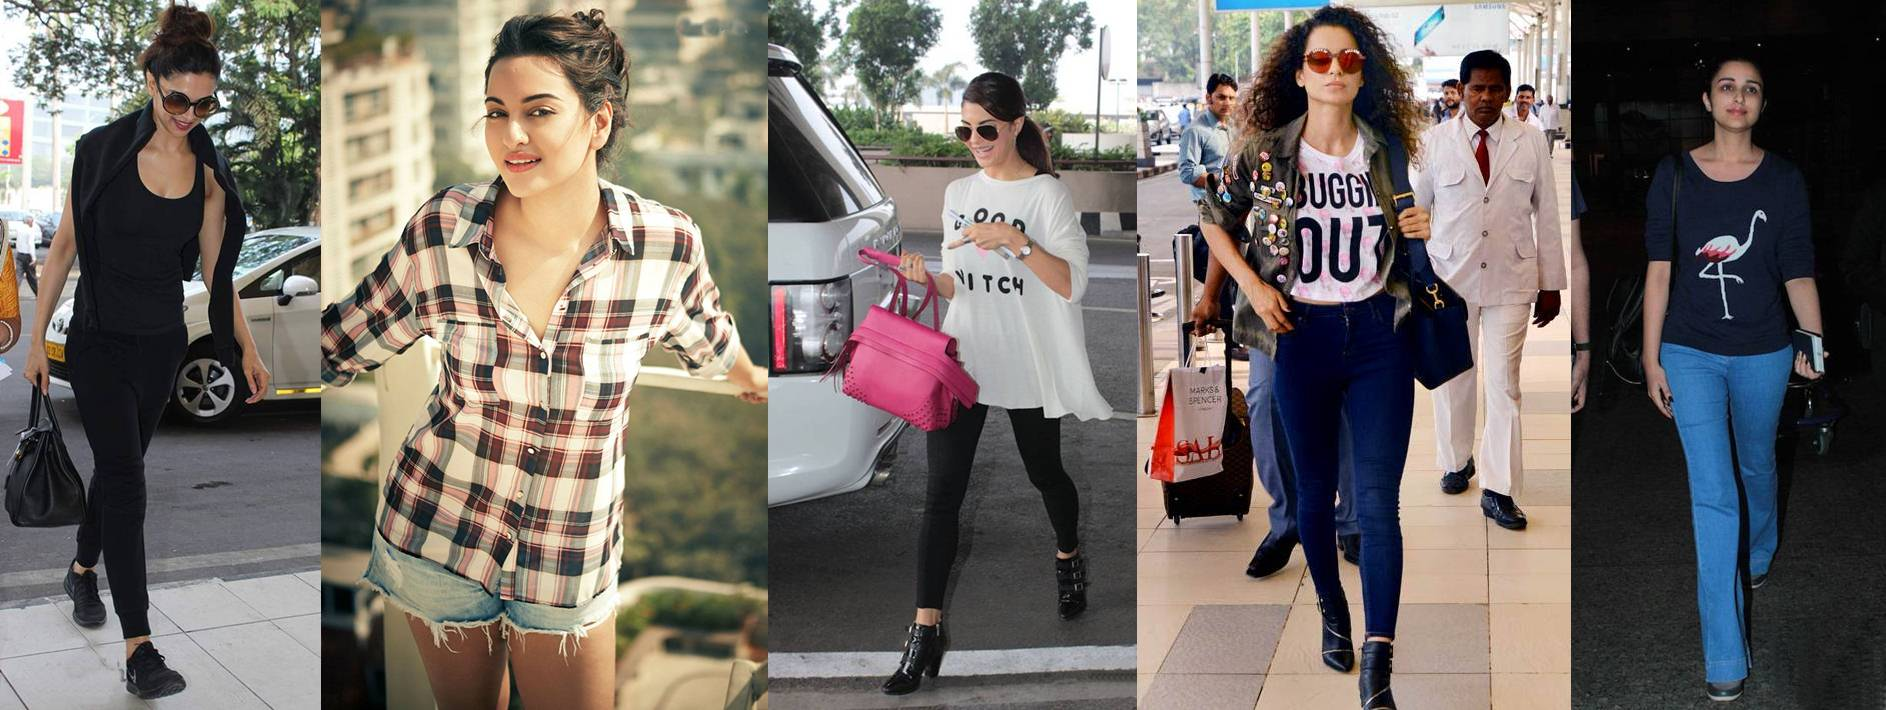 Best of Bollywood Fashion Trends in 2015 | With Pictures - Casual